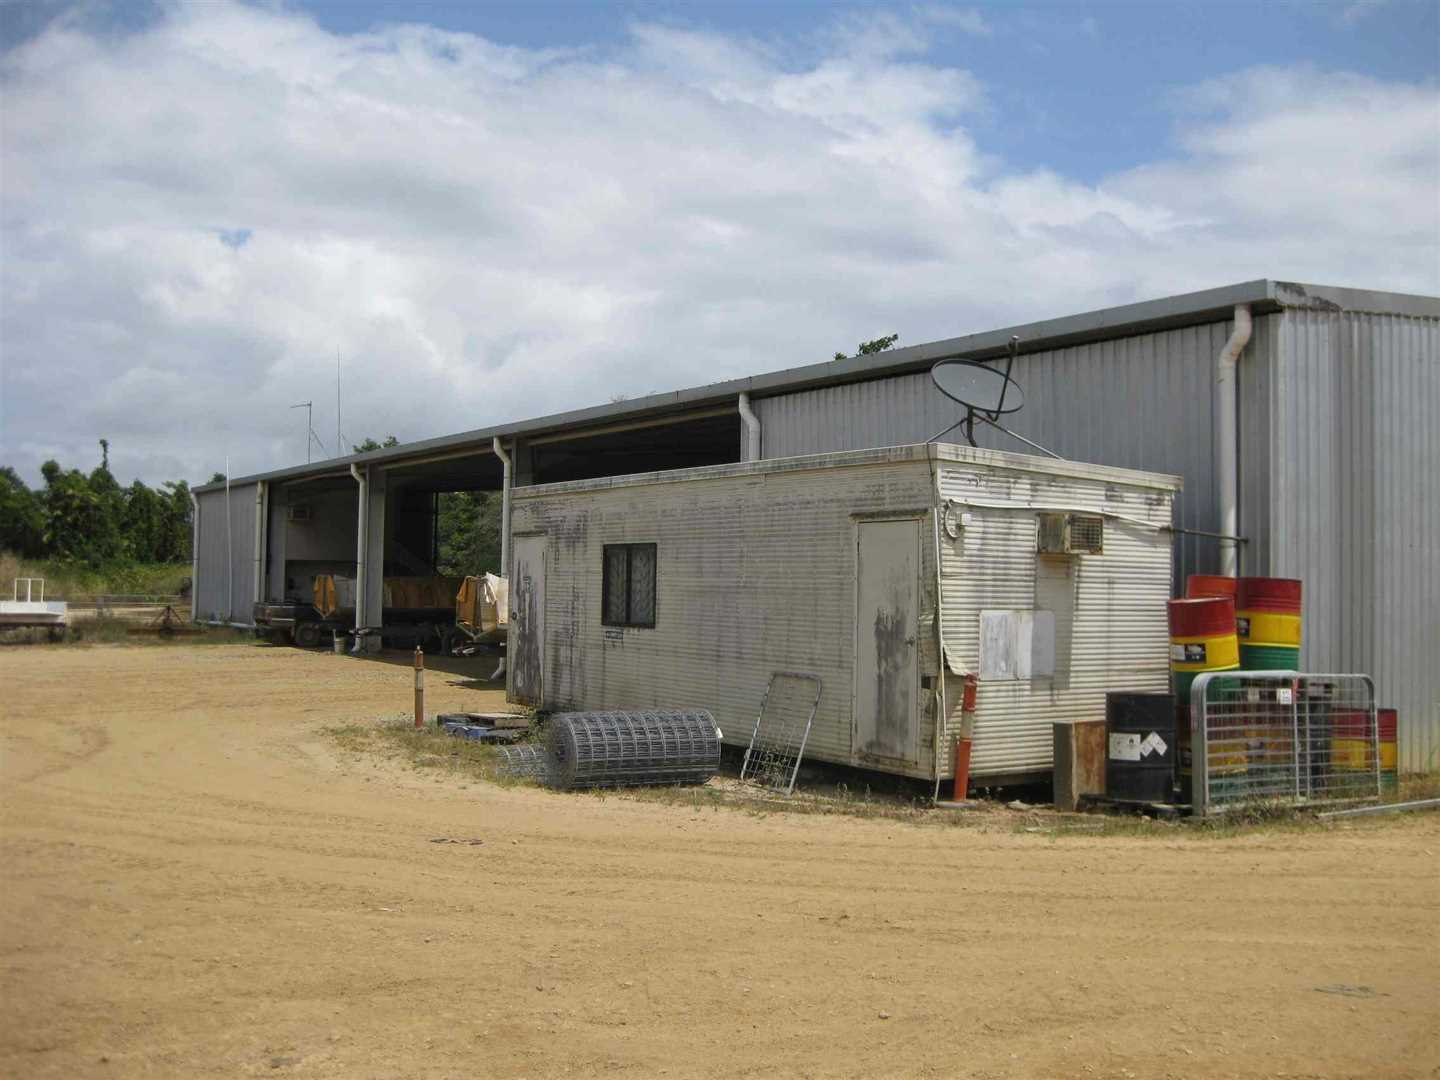 View of part of packing shed, photo 3 with donga in front